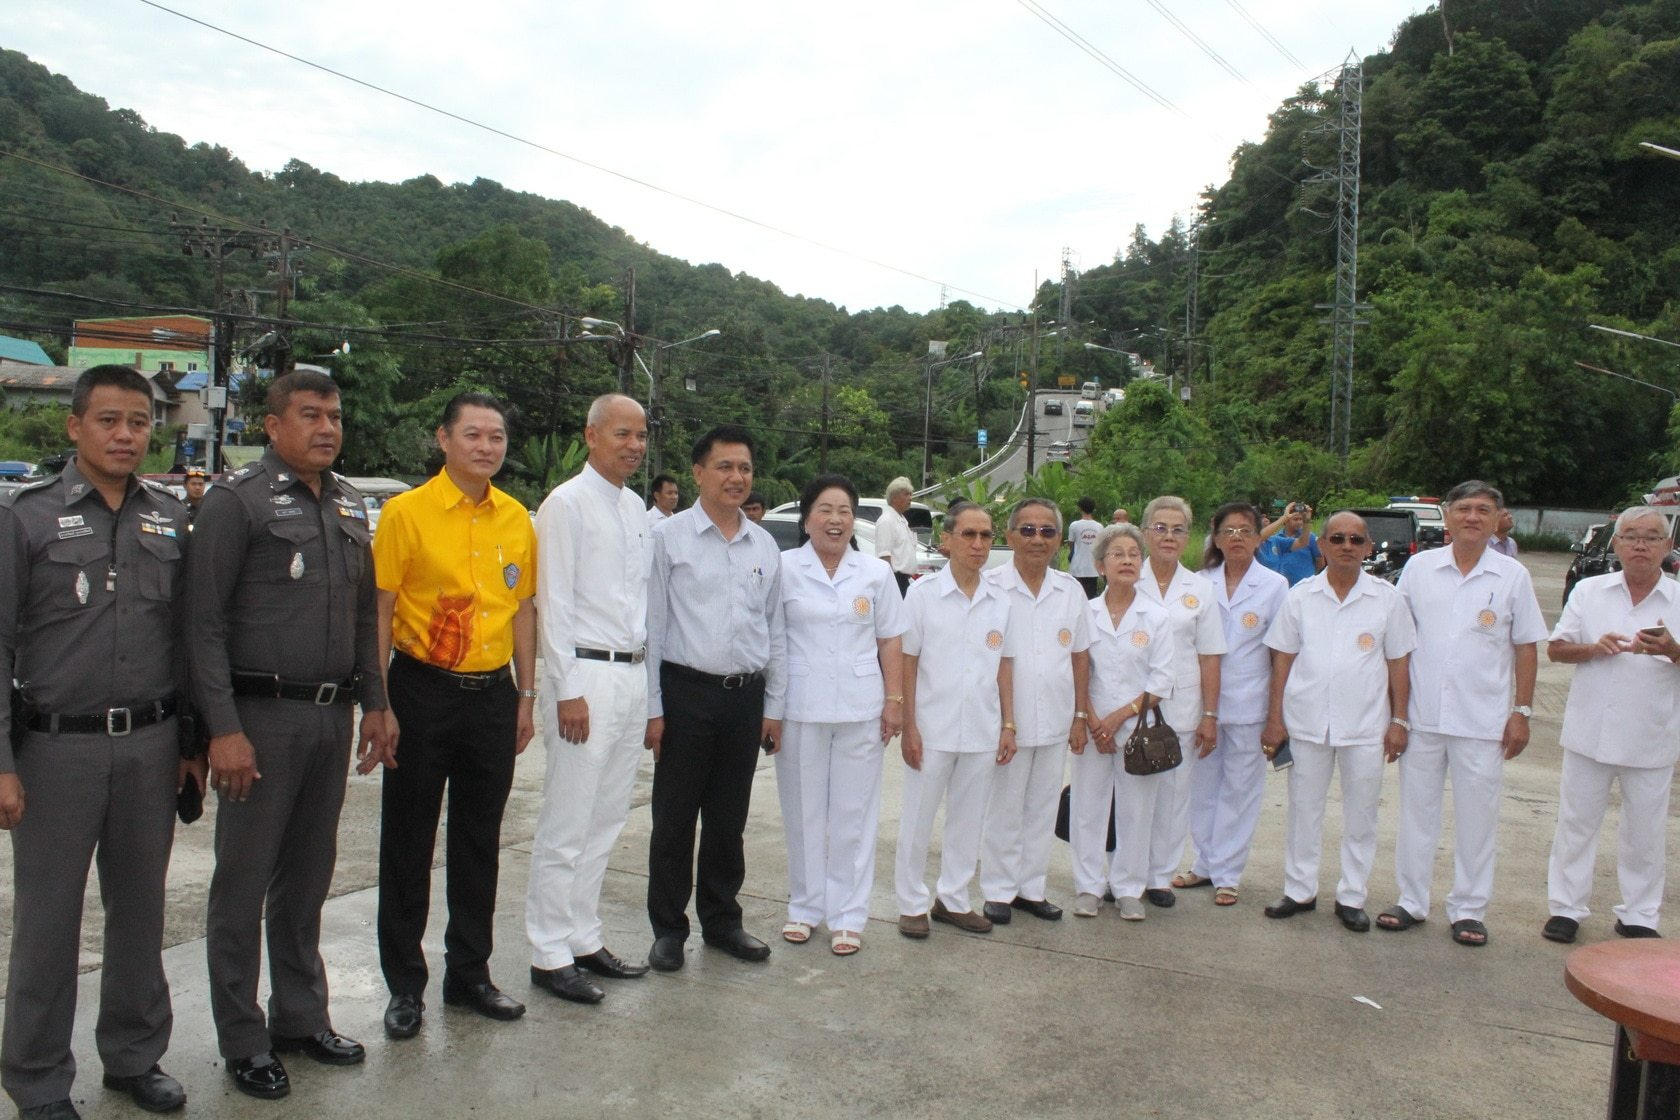 New Kusoldharm rescue office branch launched at base of Patong Hill | Thaiger